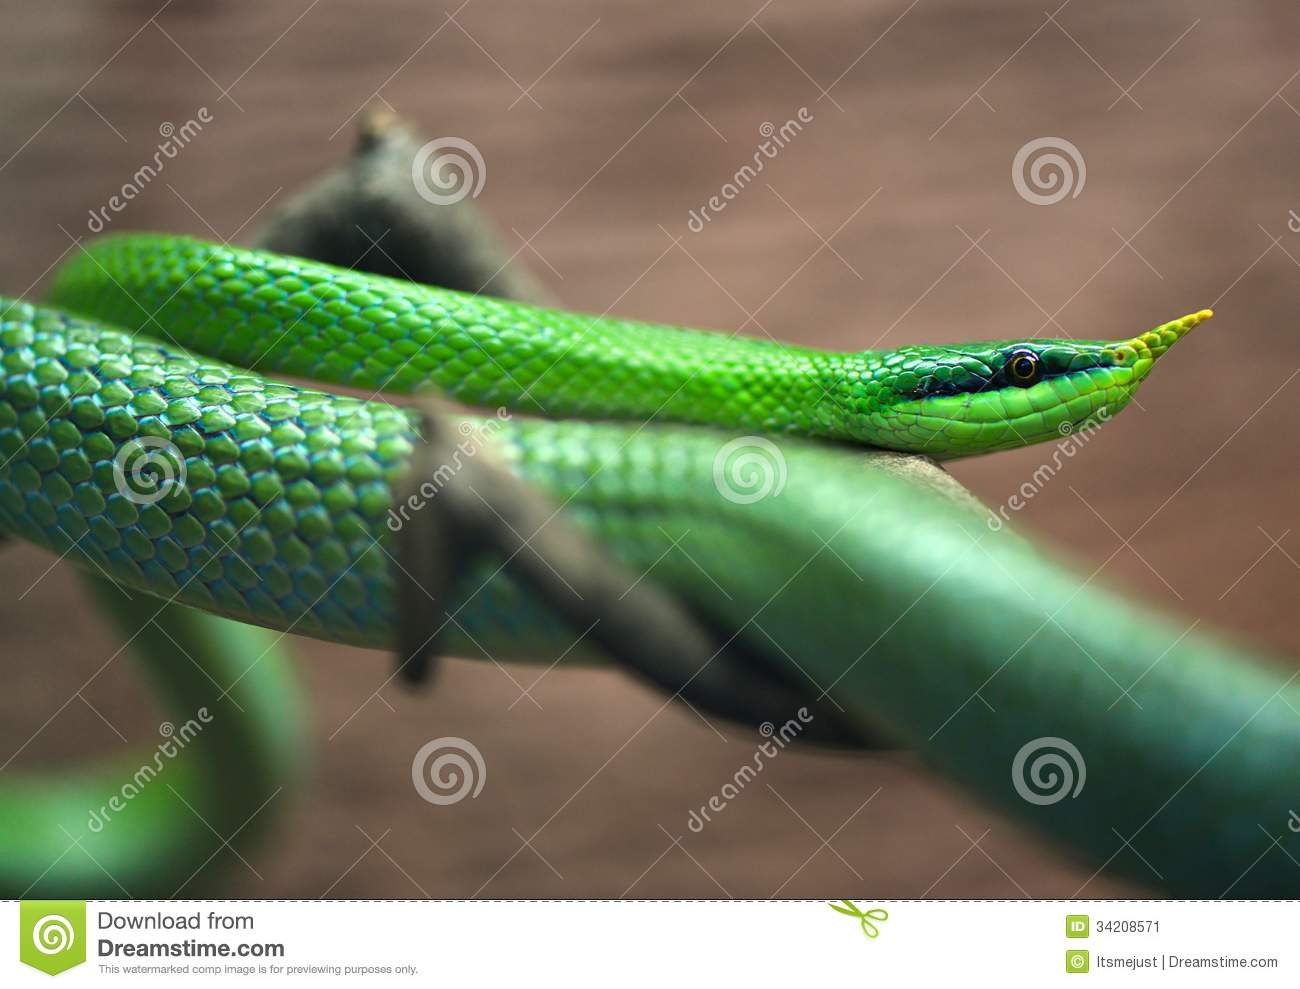 green snakes branches snake - photo #41